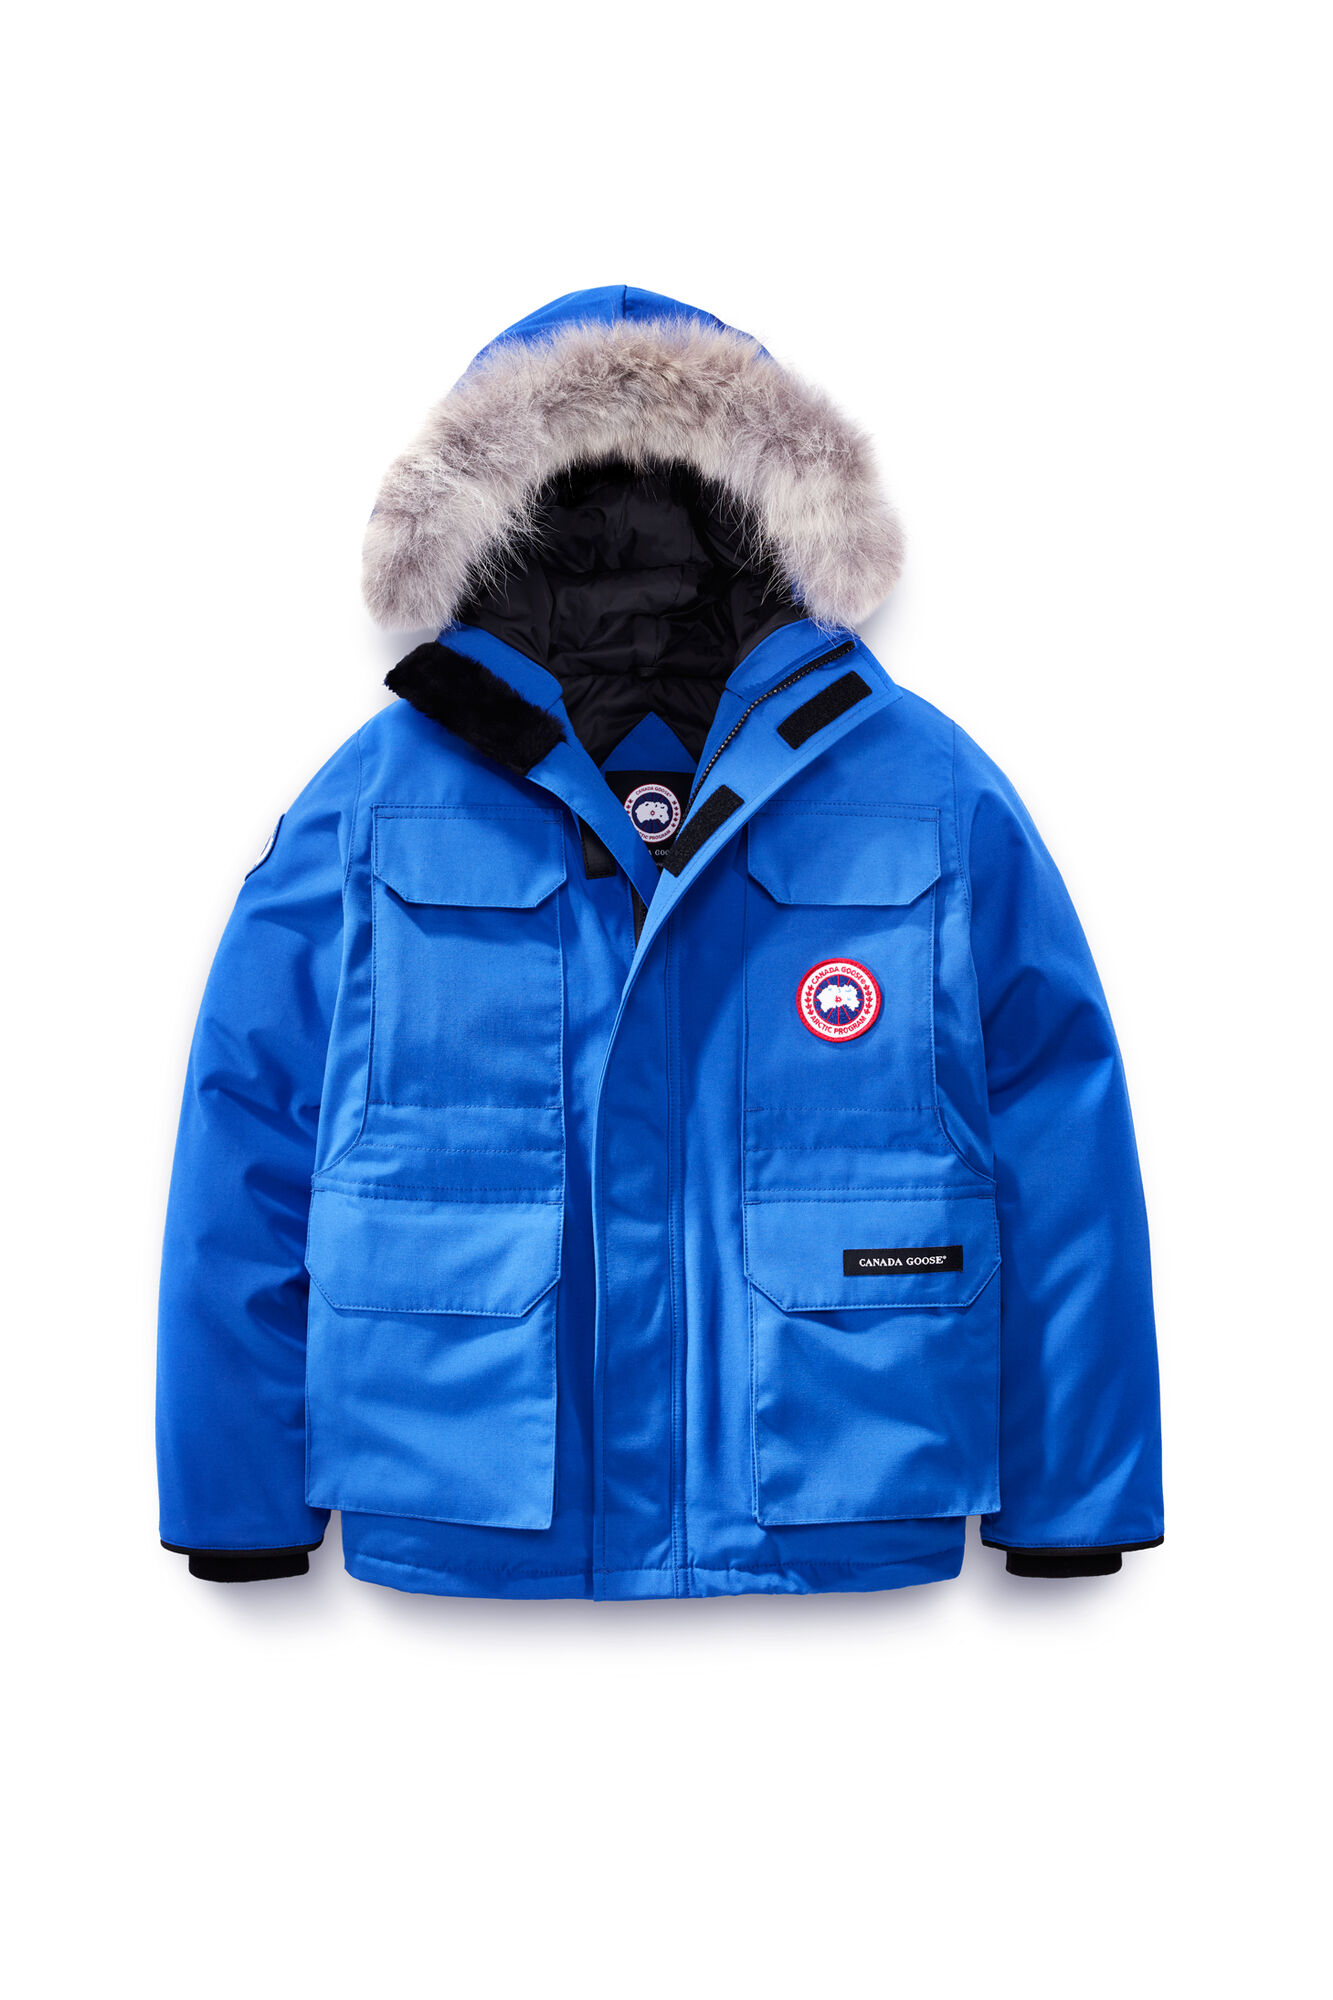 Canada Goose down outlet fake - Kids Extreme Weather Outerwear | Canada Goose?